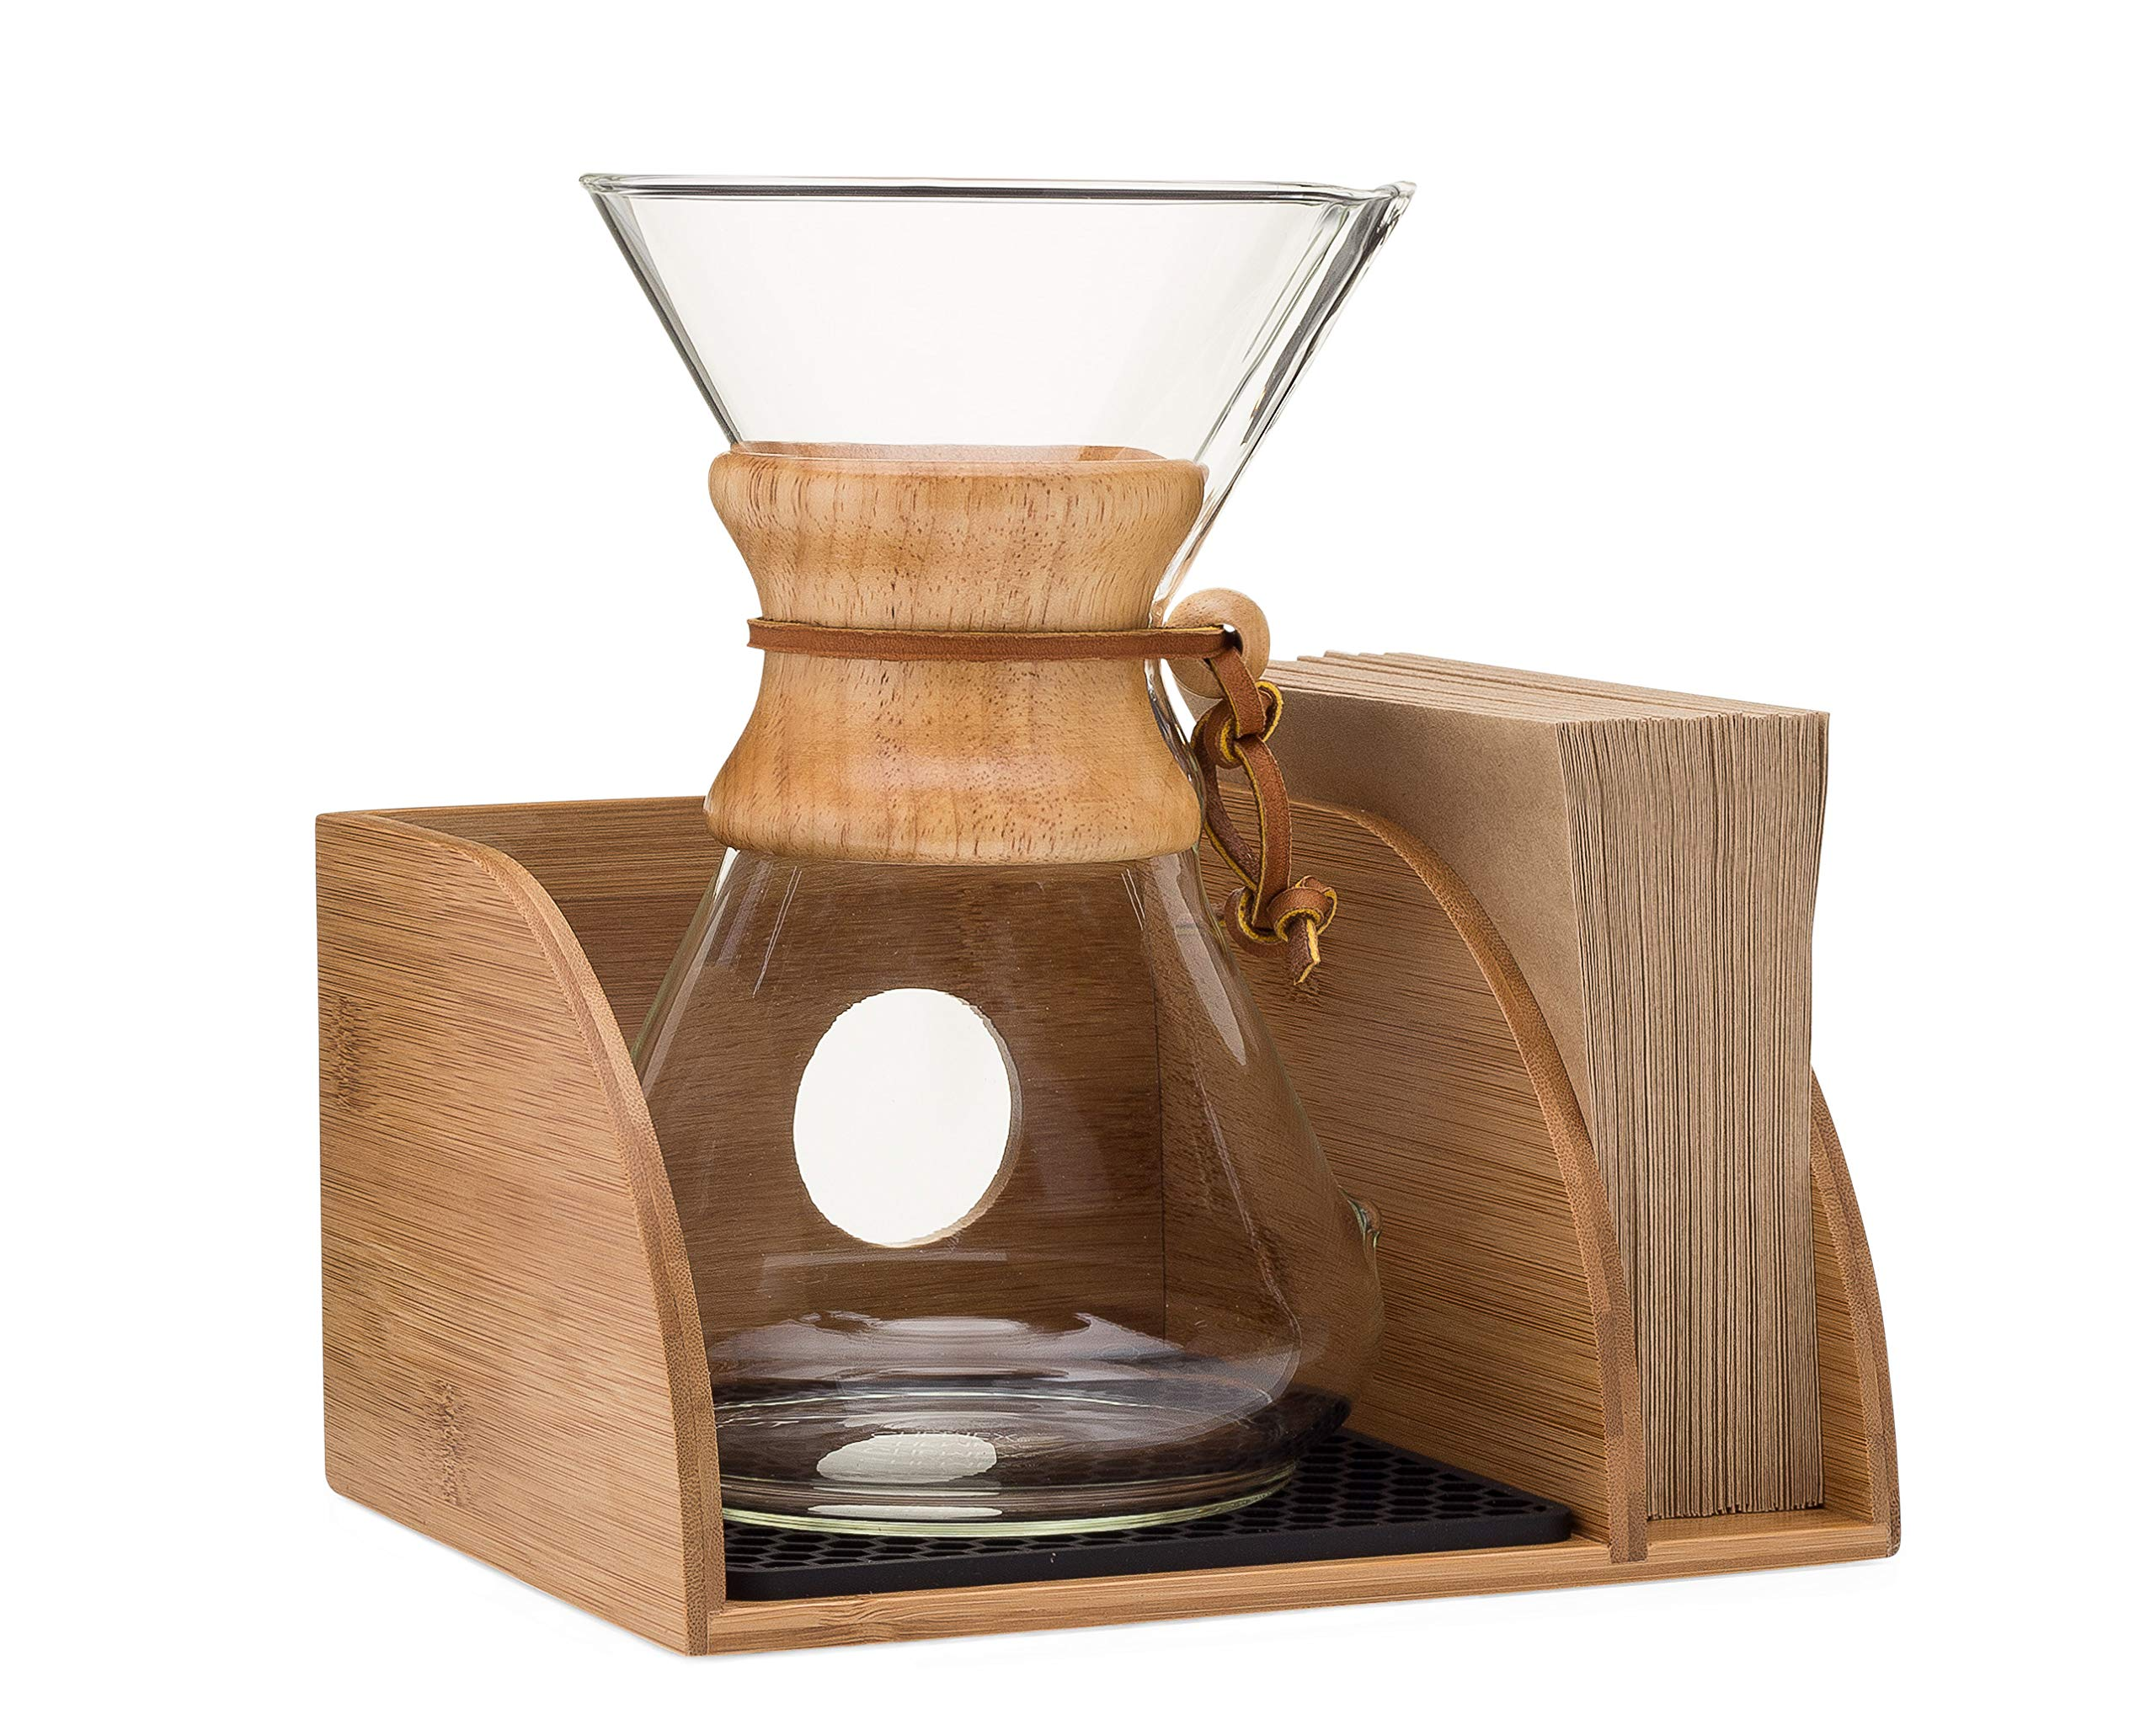 Chemex Coffee Maker Organizer with Silicone Mat | Eco-friendly, Durable & Water Resistant Bamboo | Designed for Baratza Encore Burr Grinders, Chemex Coffee Makers & Chemex Filters by Drip & Brew Coffee Company